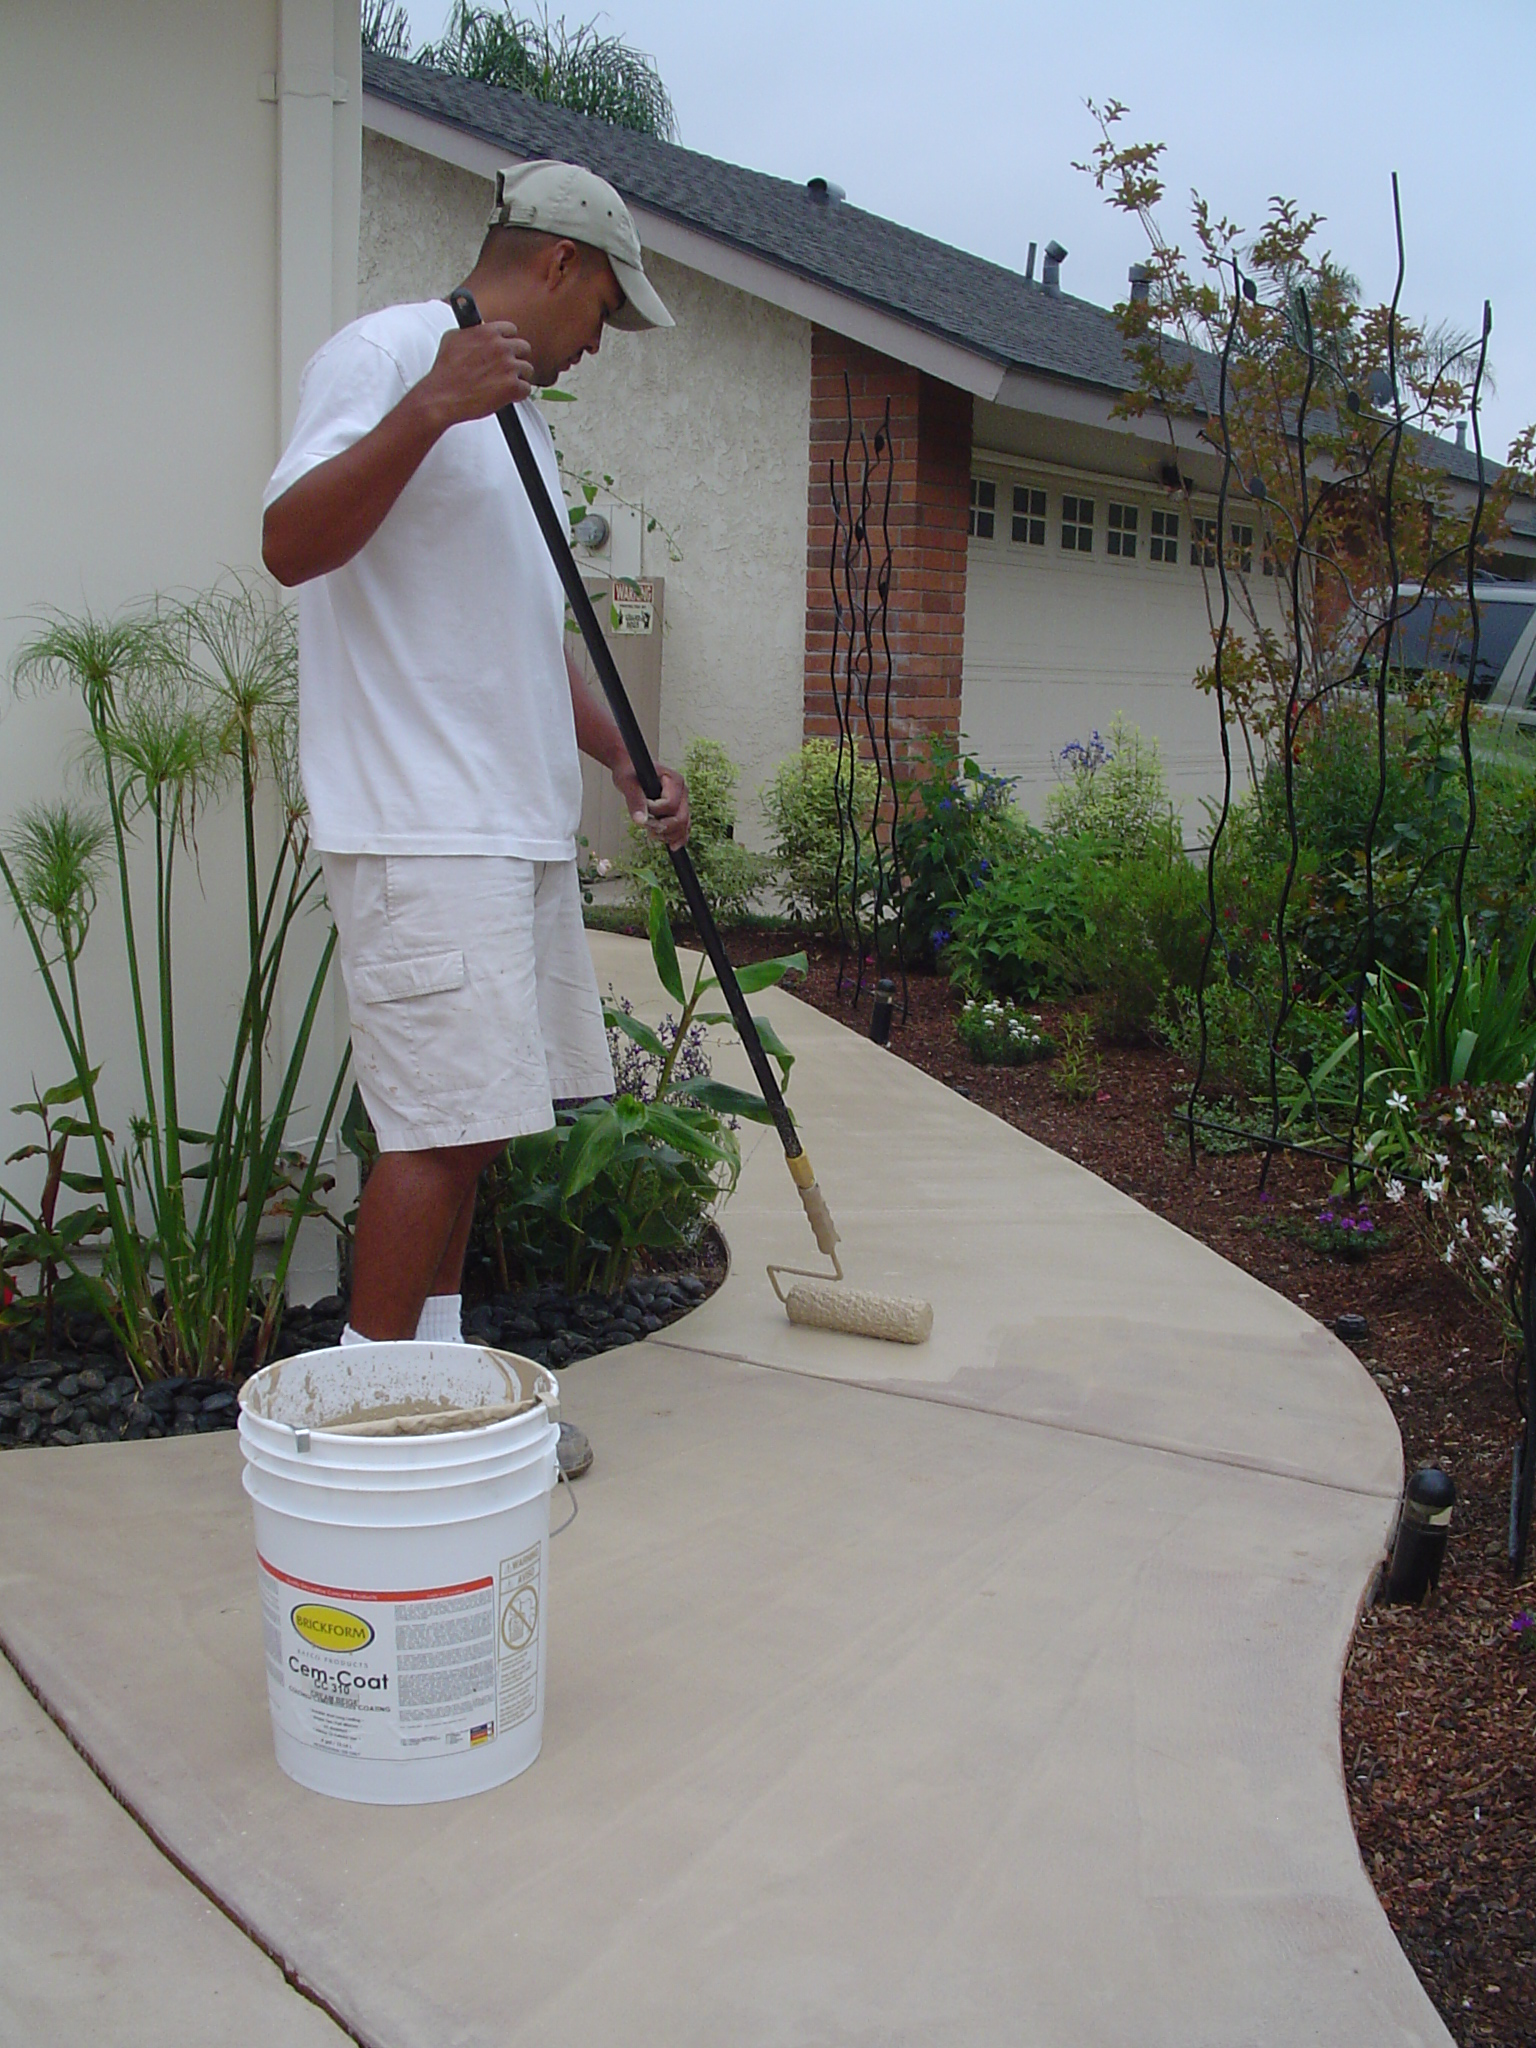 Cem-Coat is being applied to restore a blotchy driveway and sidewalk combination.